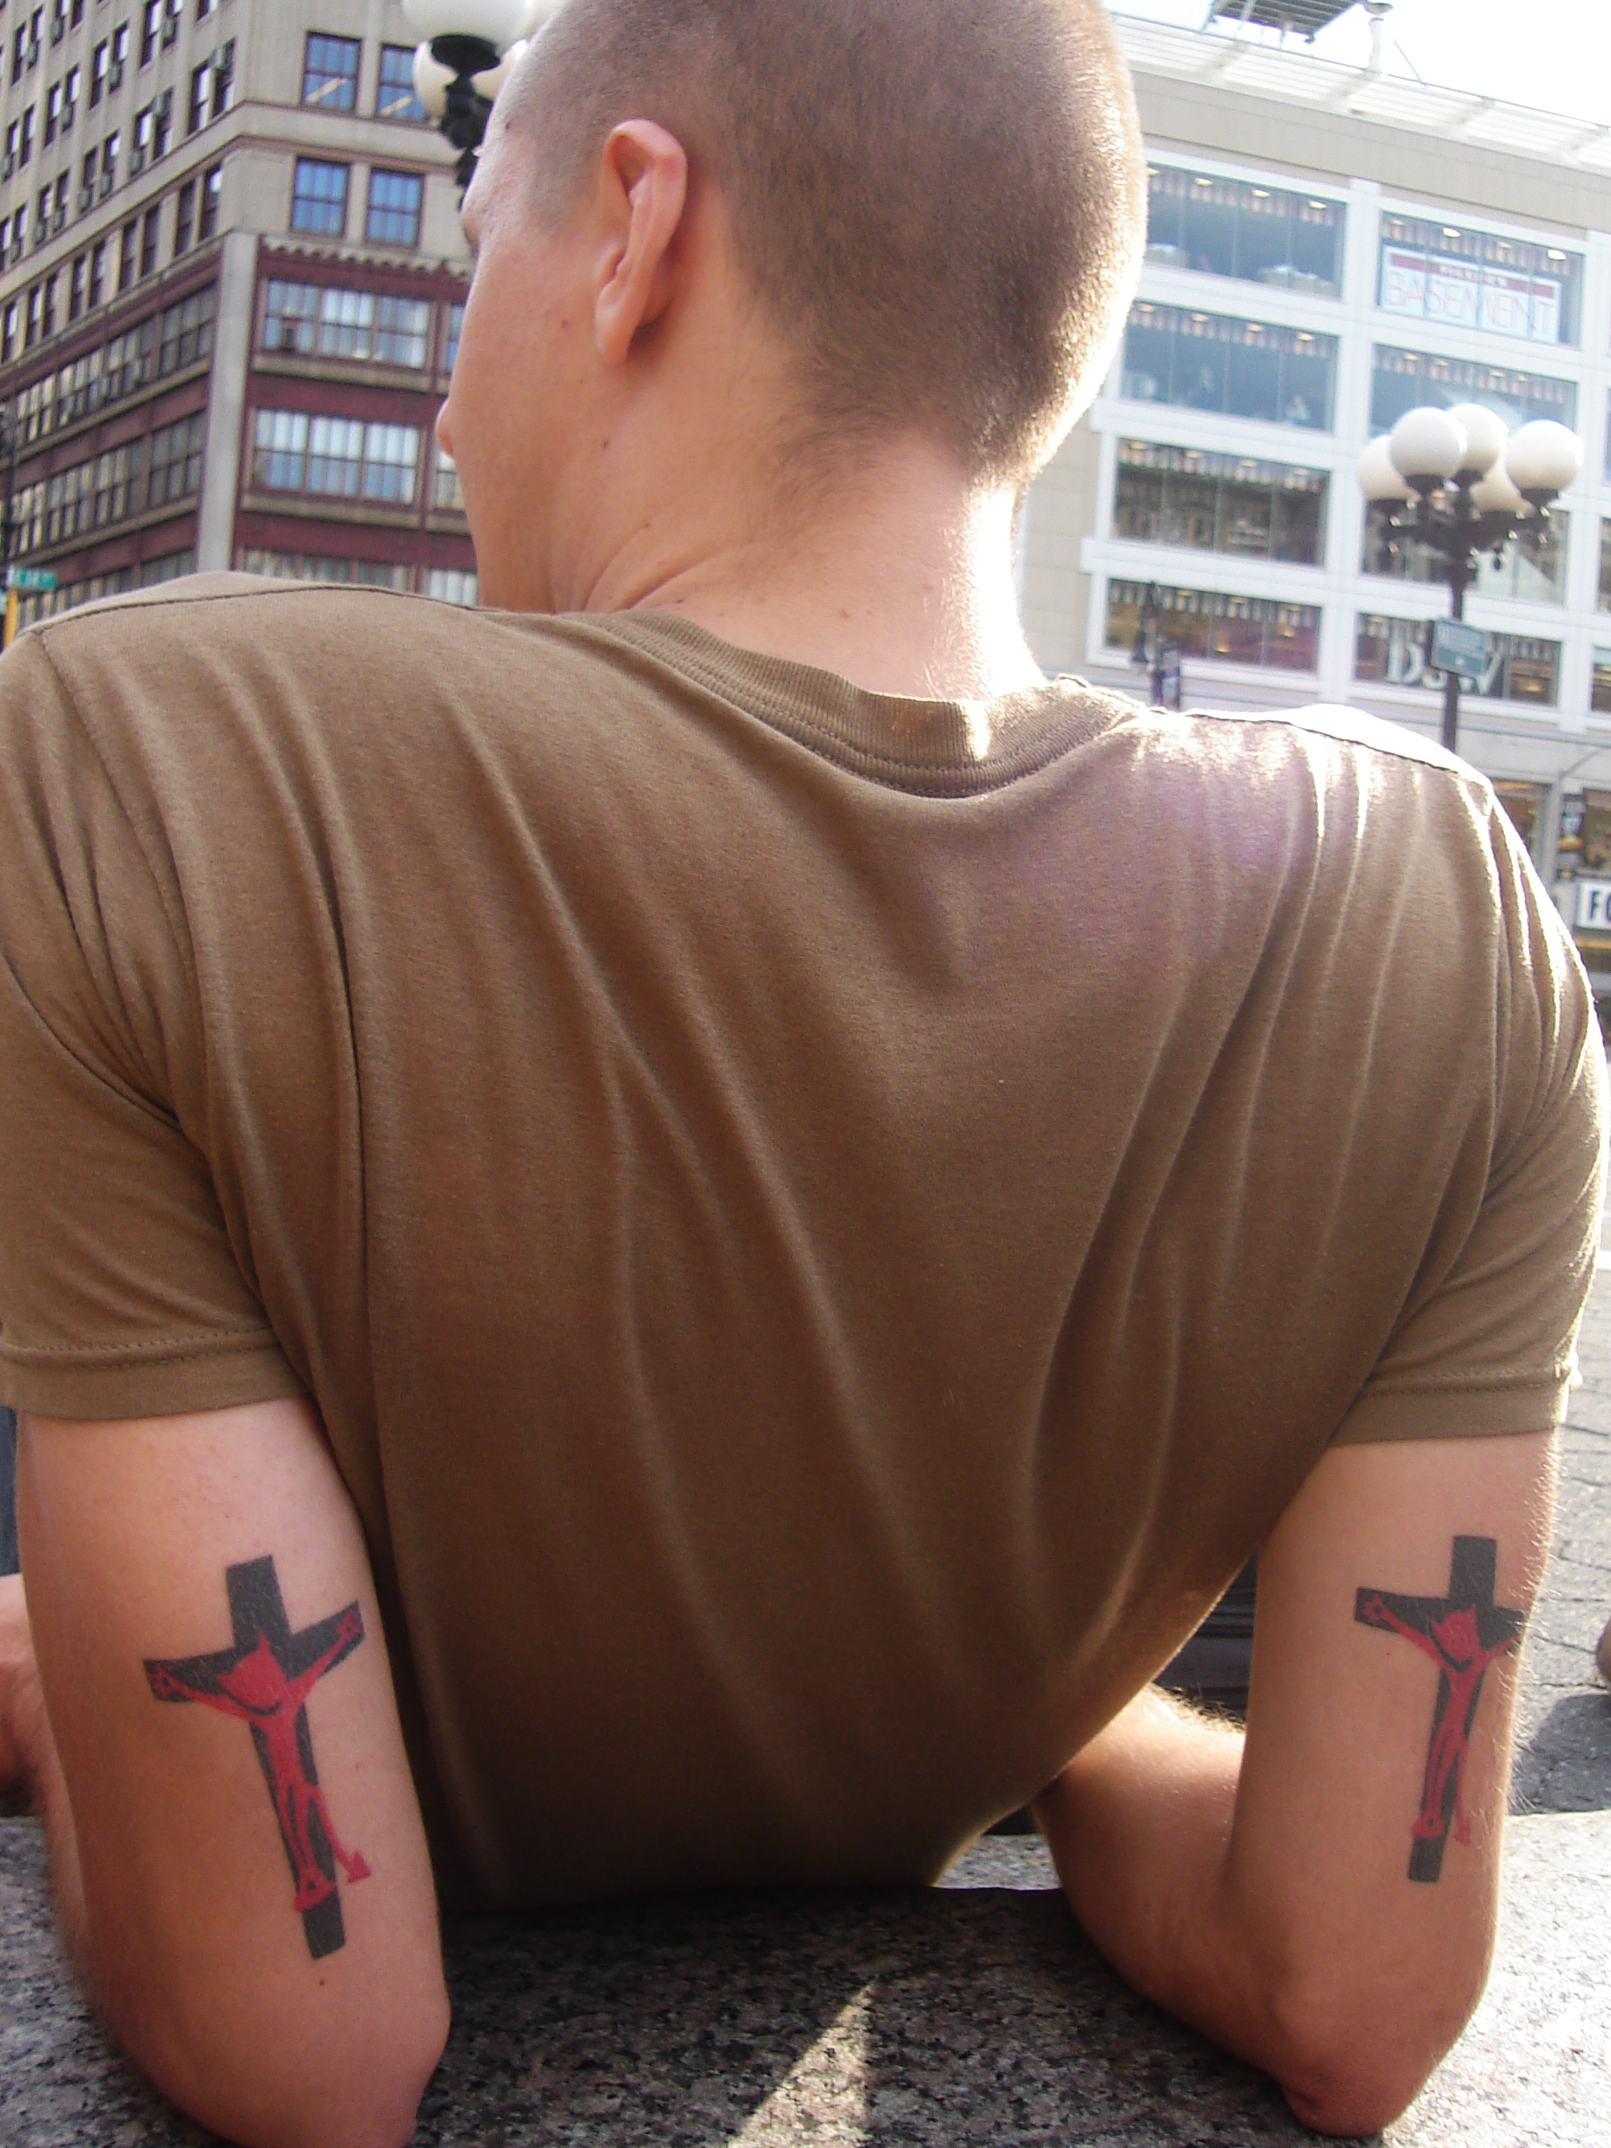 man with Crucified Satan tattoos